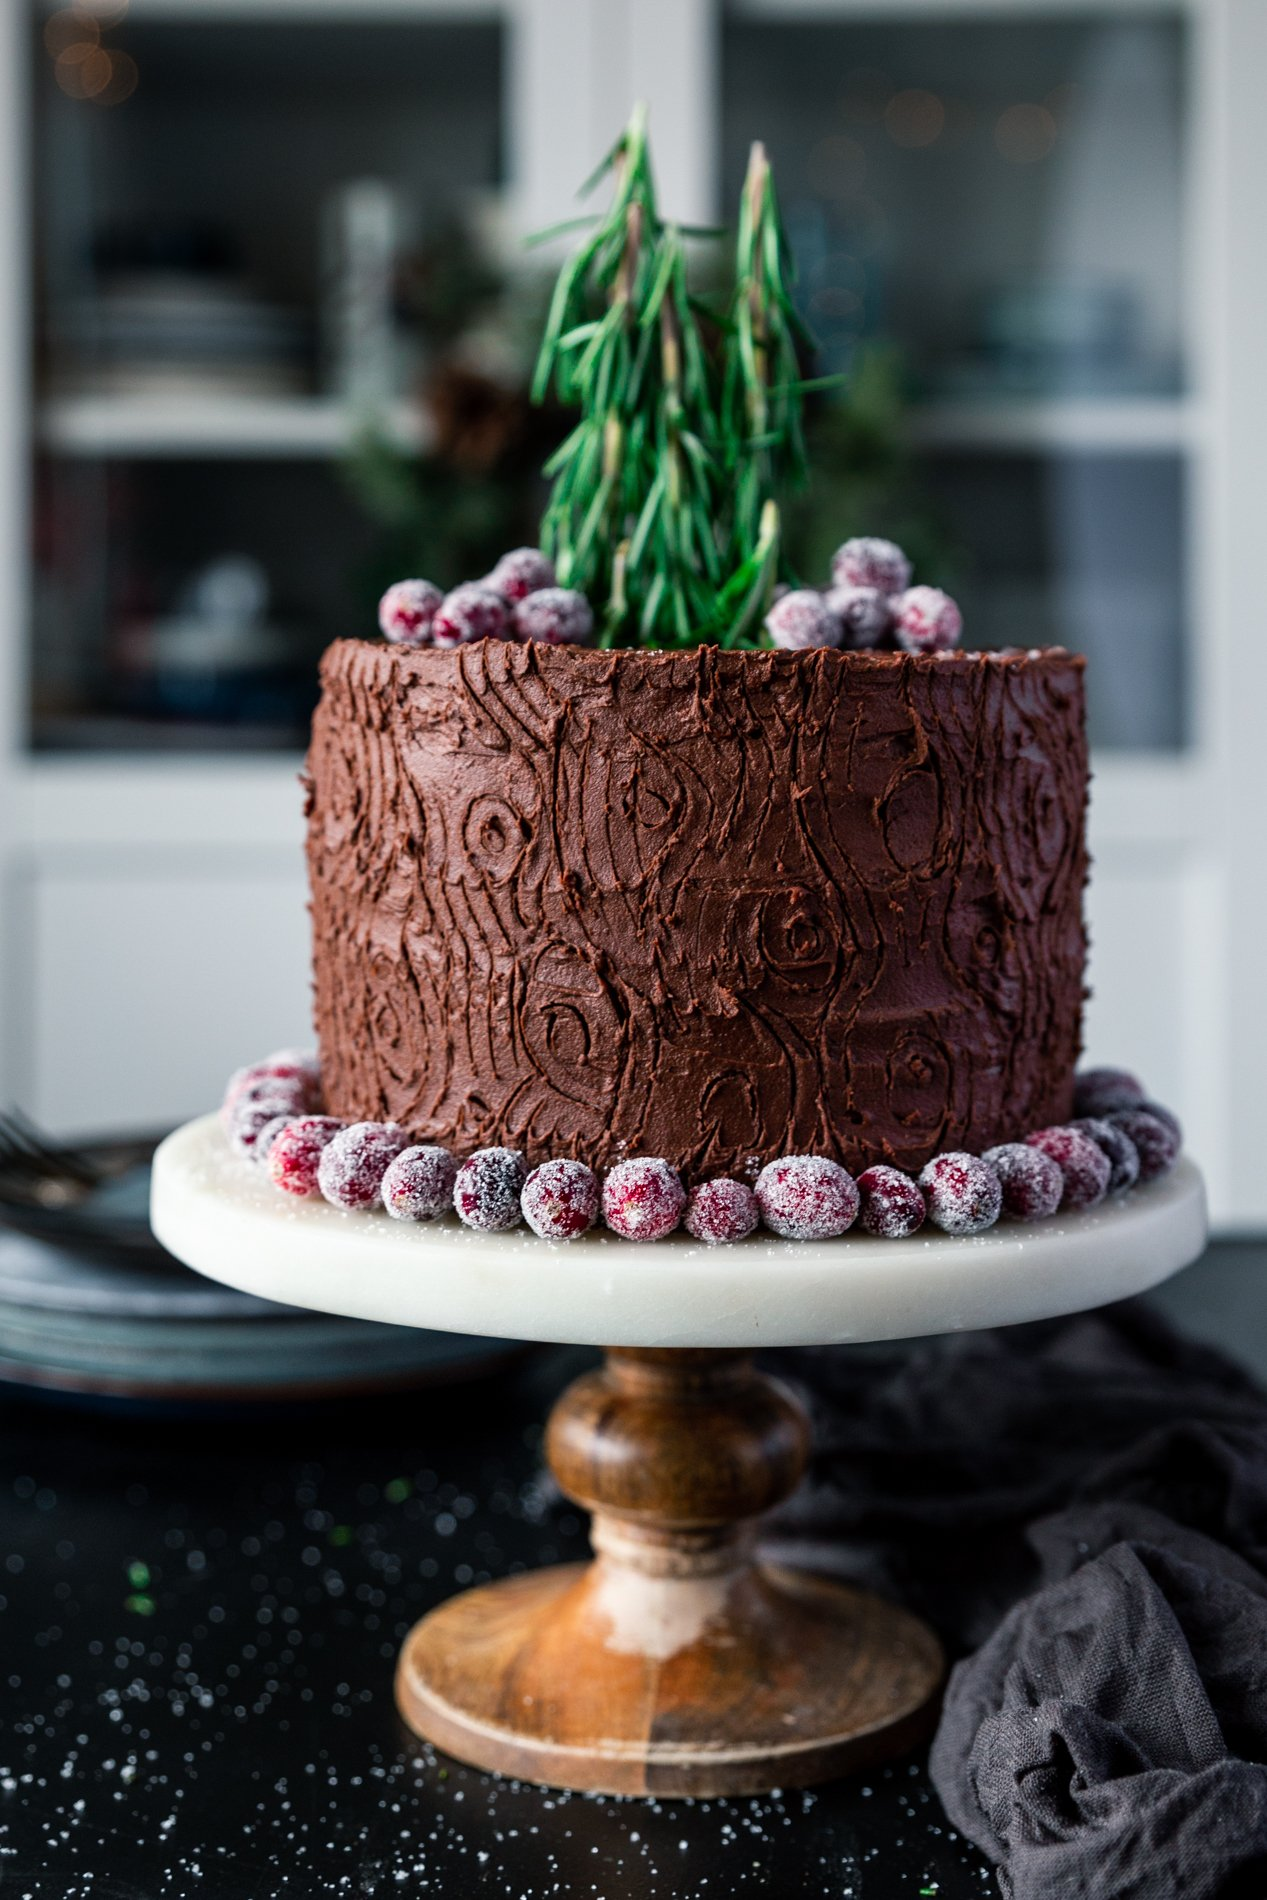 straight-forward view of a chocolate cake on a cake stand with a tree stump design, surrounded by sugared cranberries, with sugared cranberries on top and rosemary sprigs acting as trees.